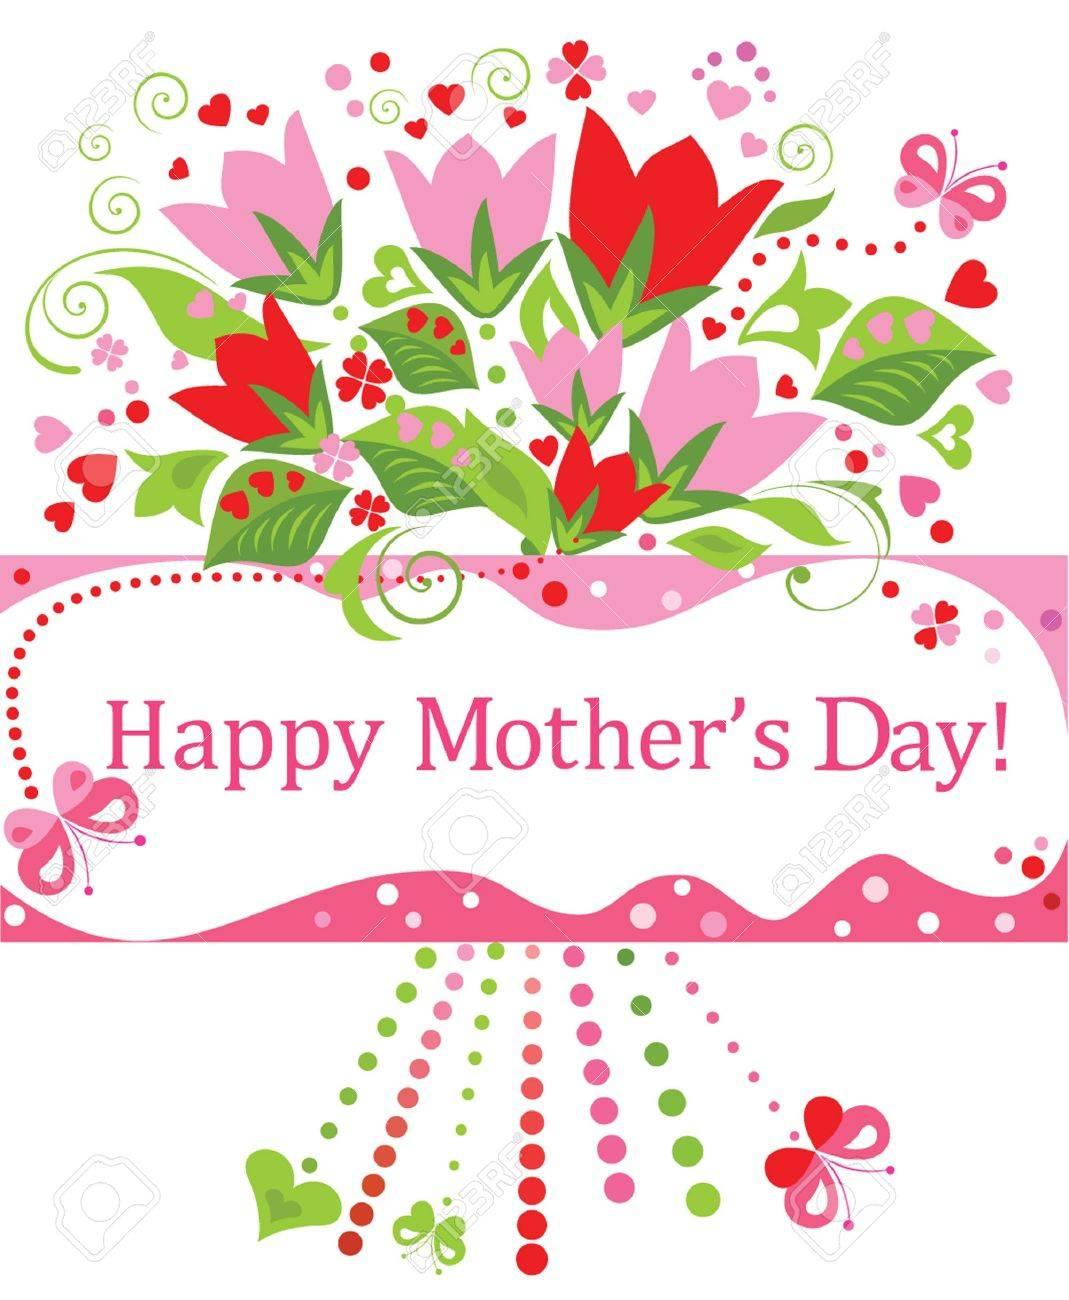 Greeting For Mothers Day Royalty Free Cliparts Vectors And Stock